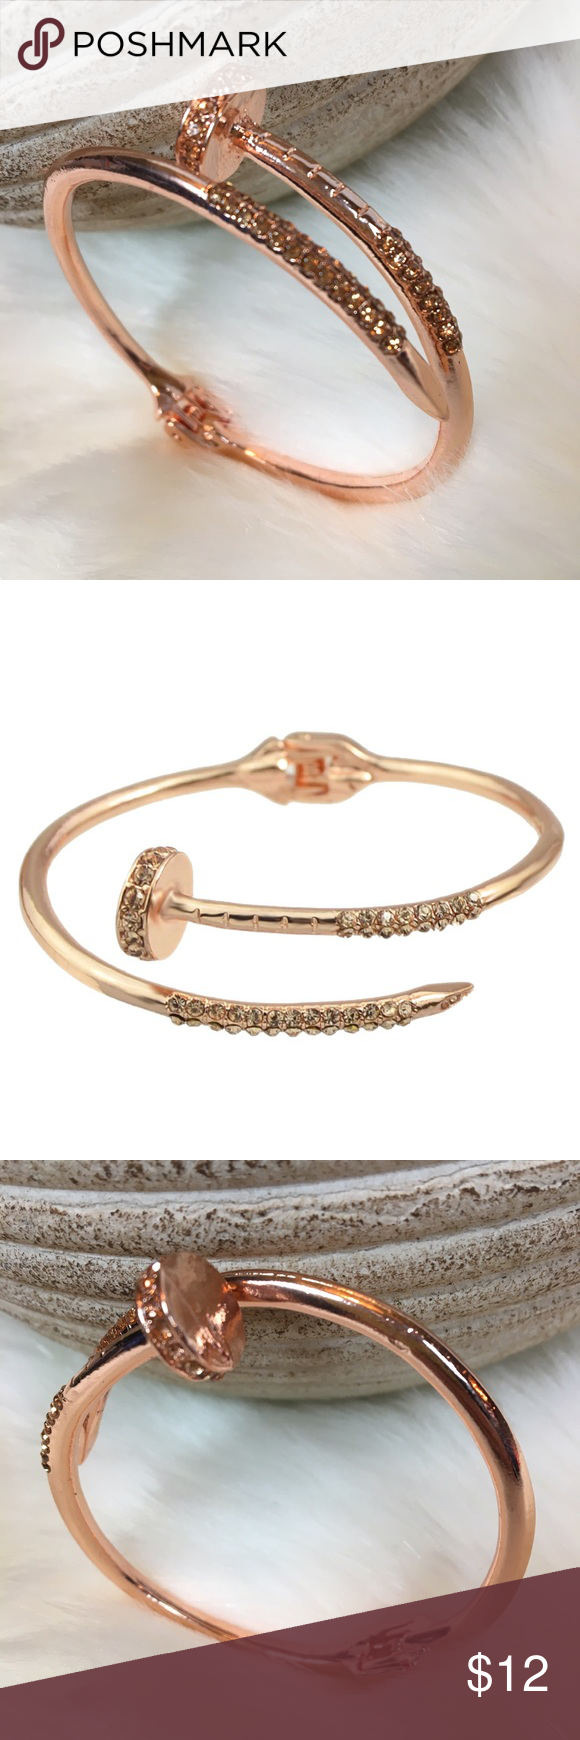 product gold knot head c bracelet nail bangle plated